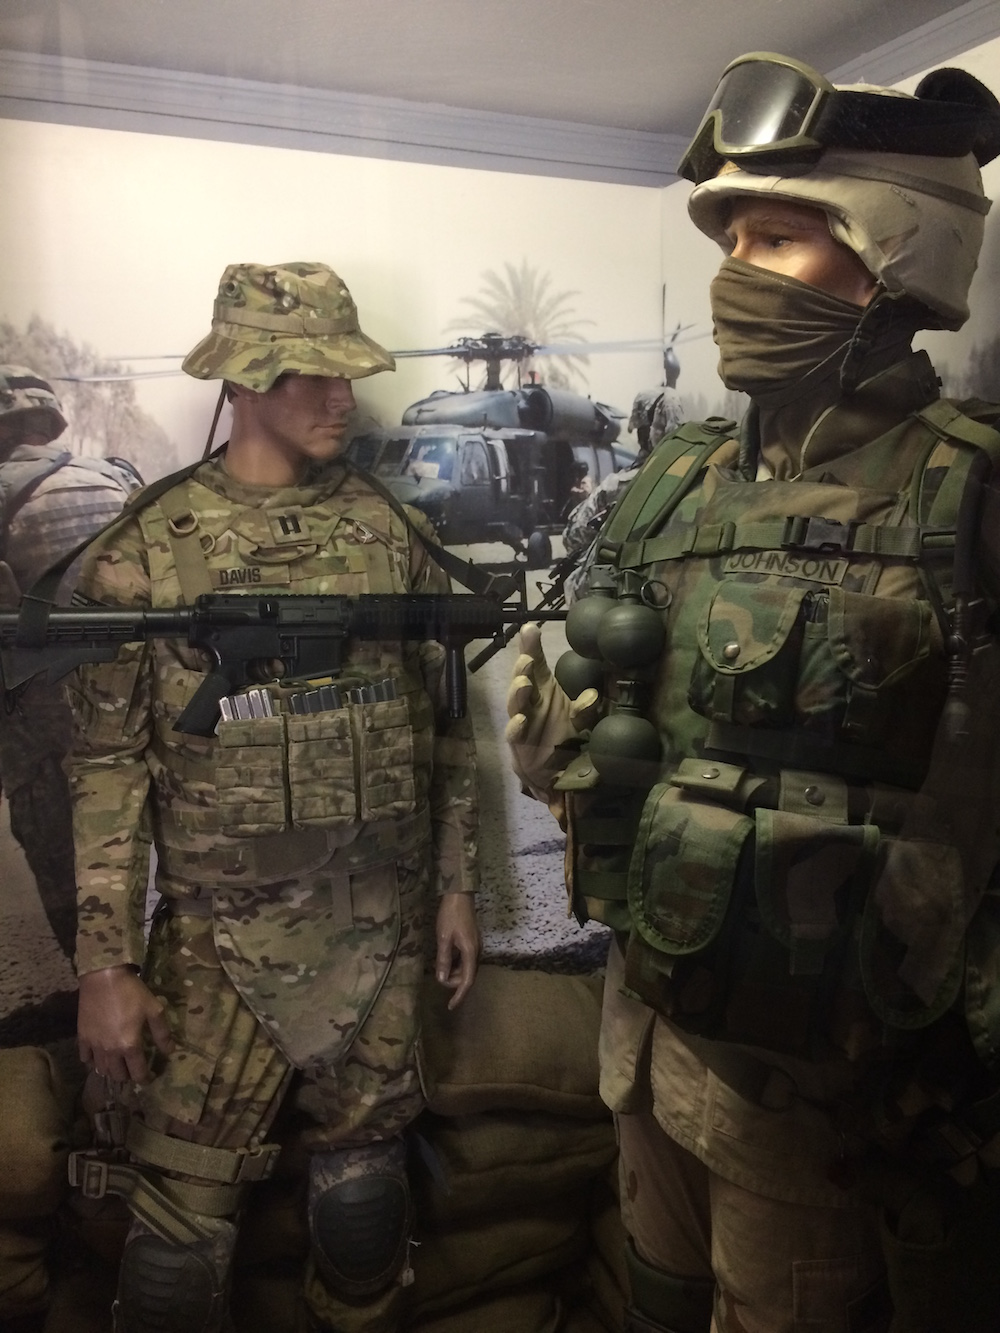 Iraq-Afghanistan War exhibit at the Charles H. Coolidge Medal of Honor Heritage Center